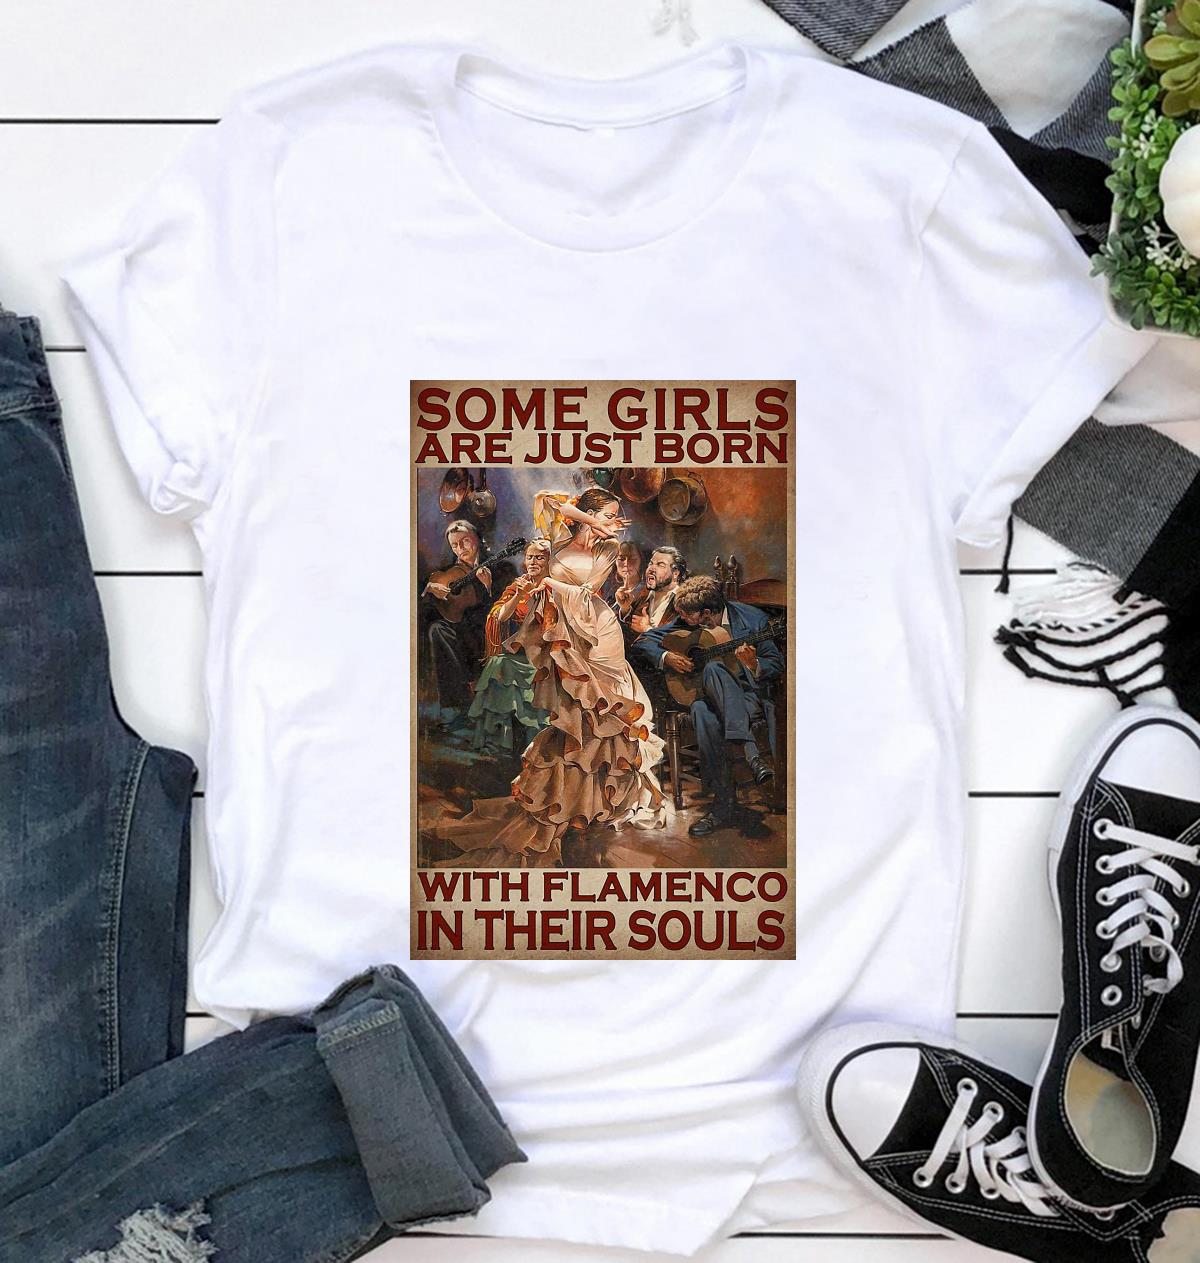 Some girls are just born with flamenco in their souls poster t-shirt